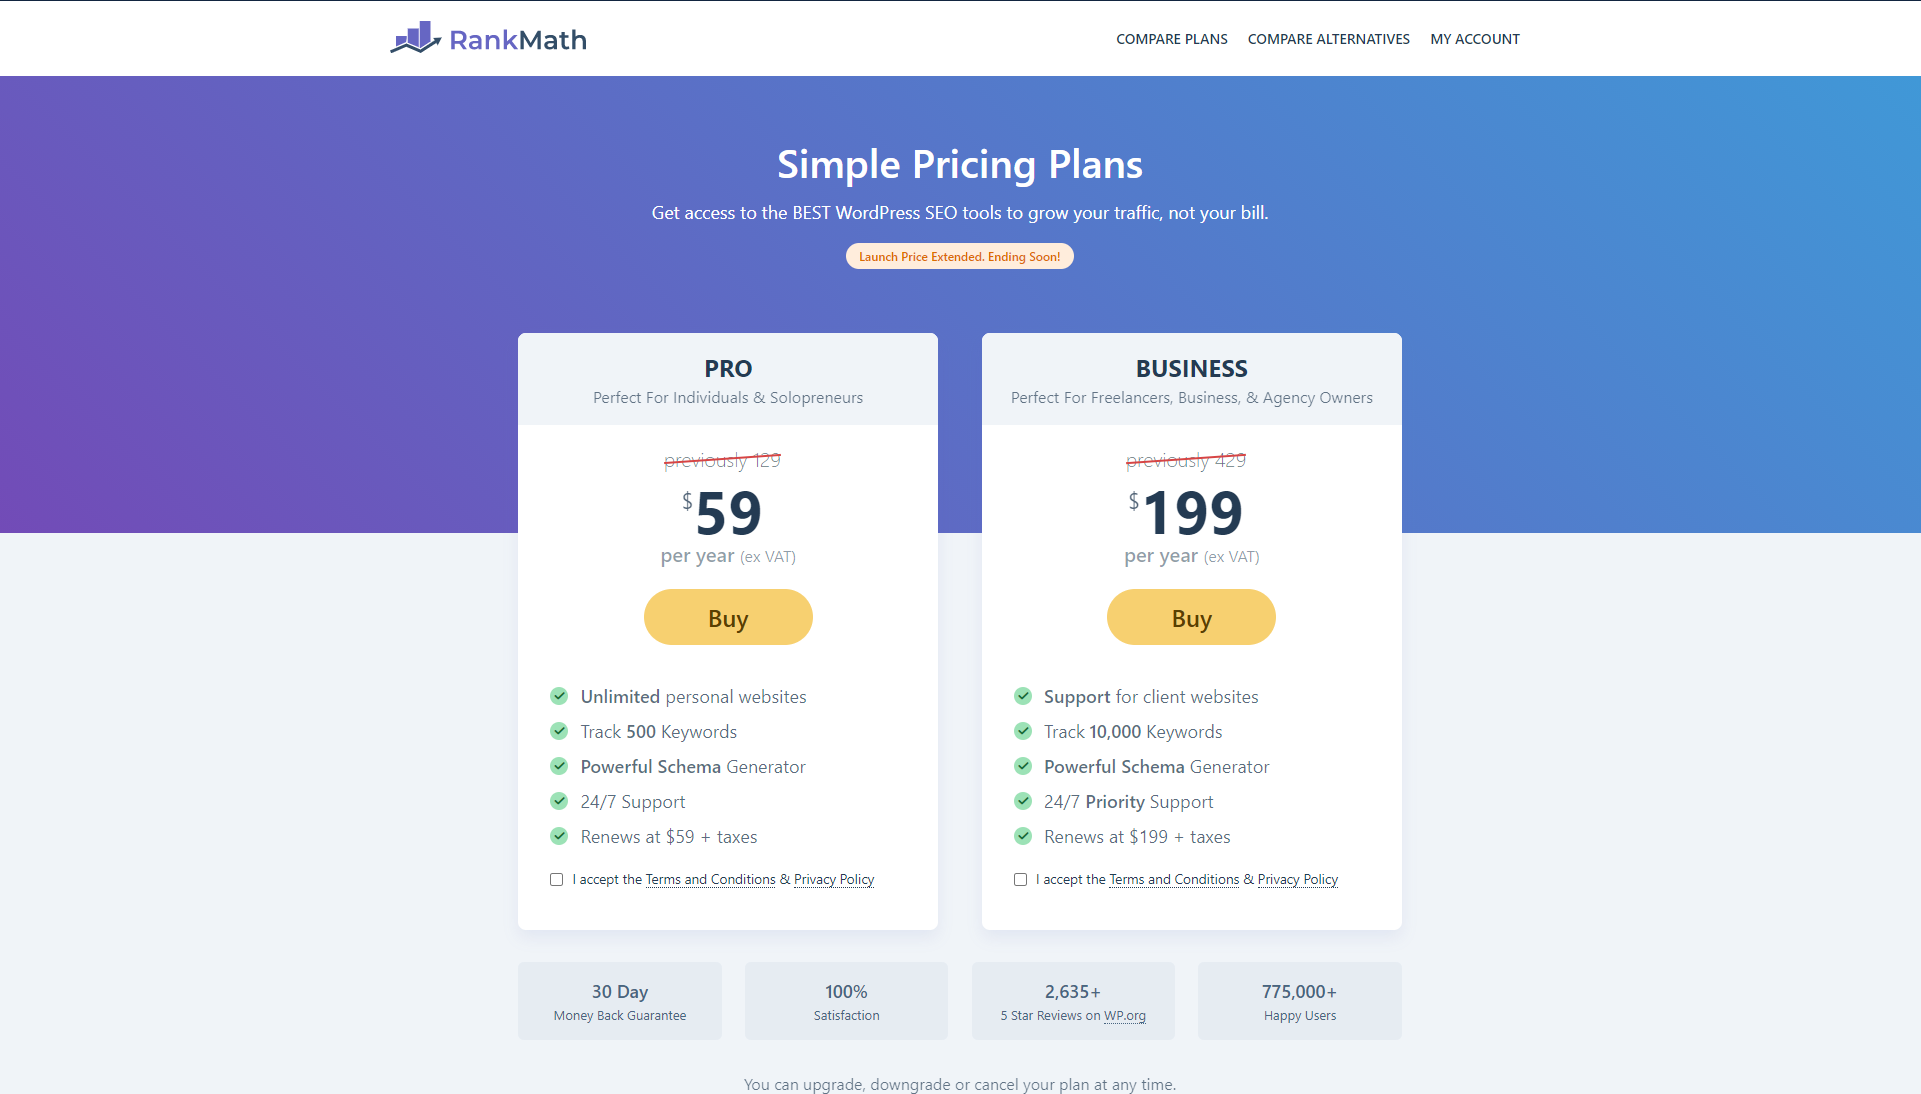 Migrate from Yoast to Rank Math | Easily Switch from Yoast to Rank Math Fast - Rank Math Premium off their website